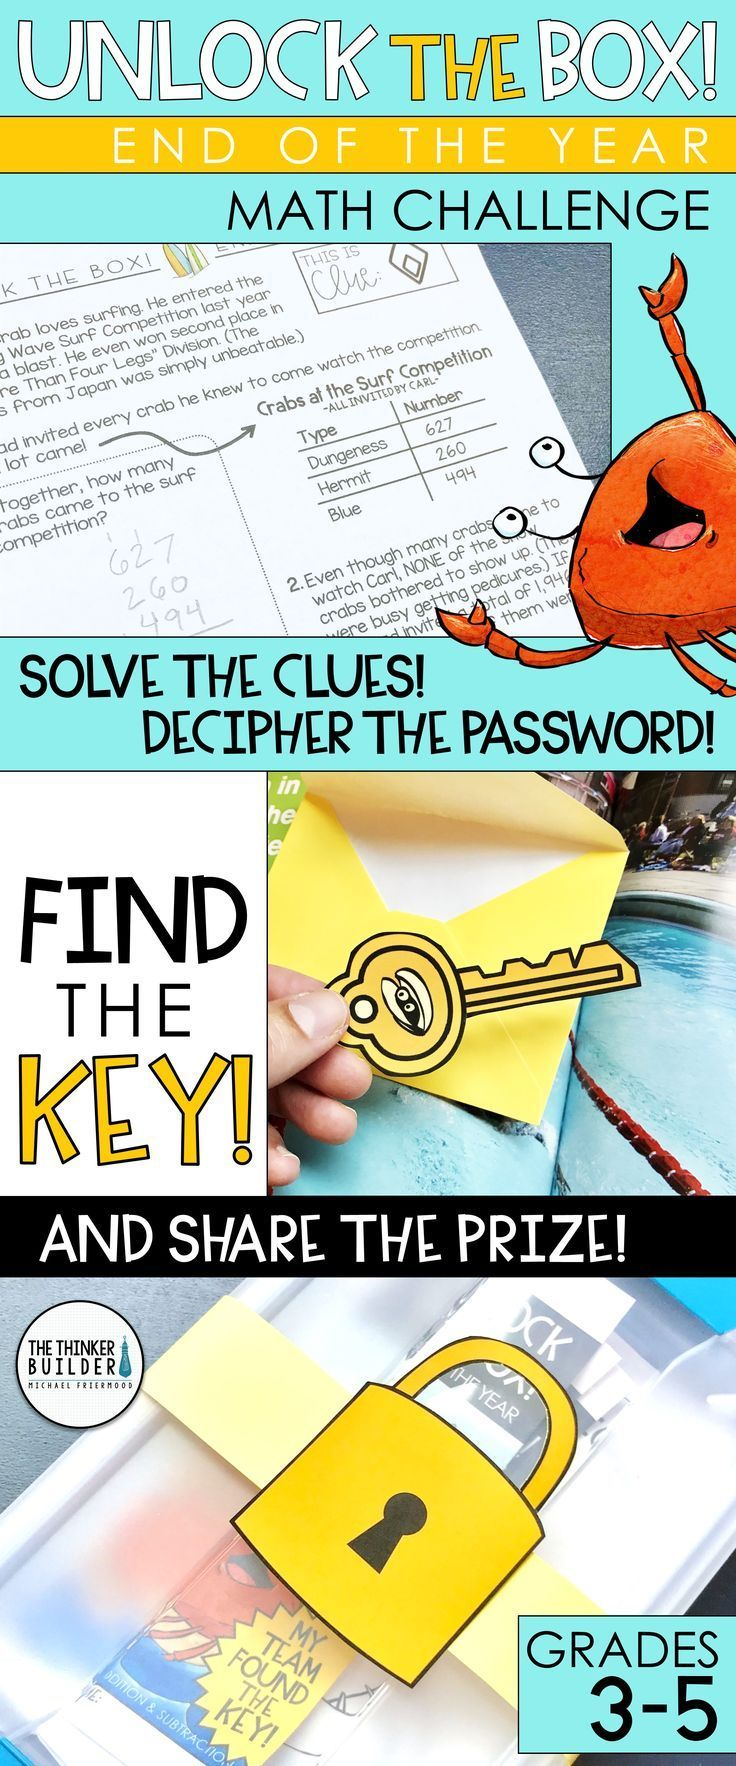 Unlock the Box! is an engaging math challenge for the end